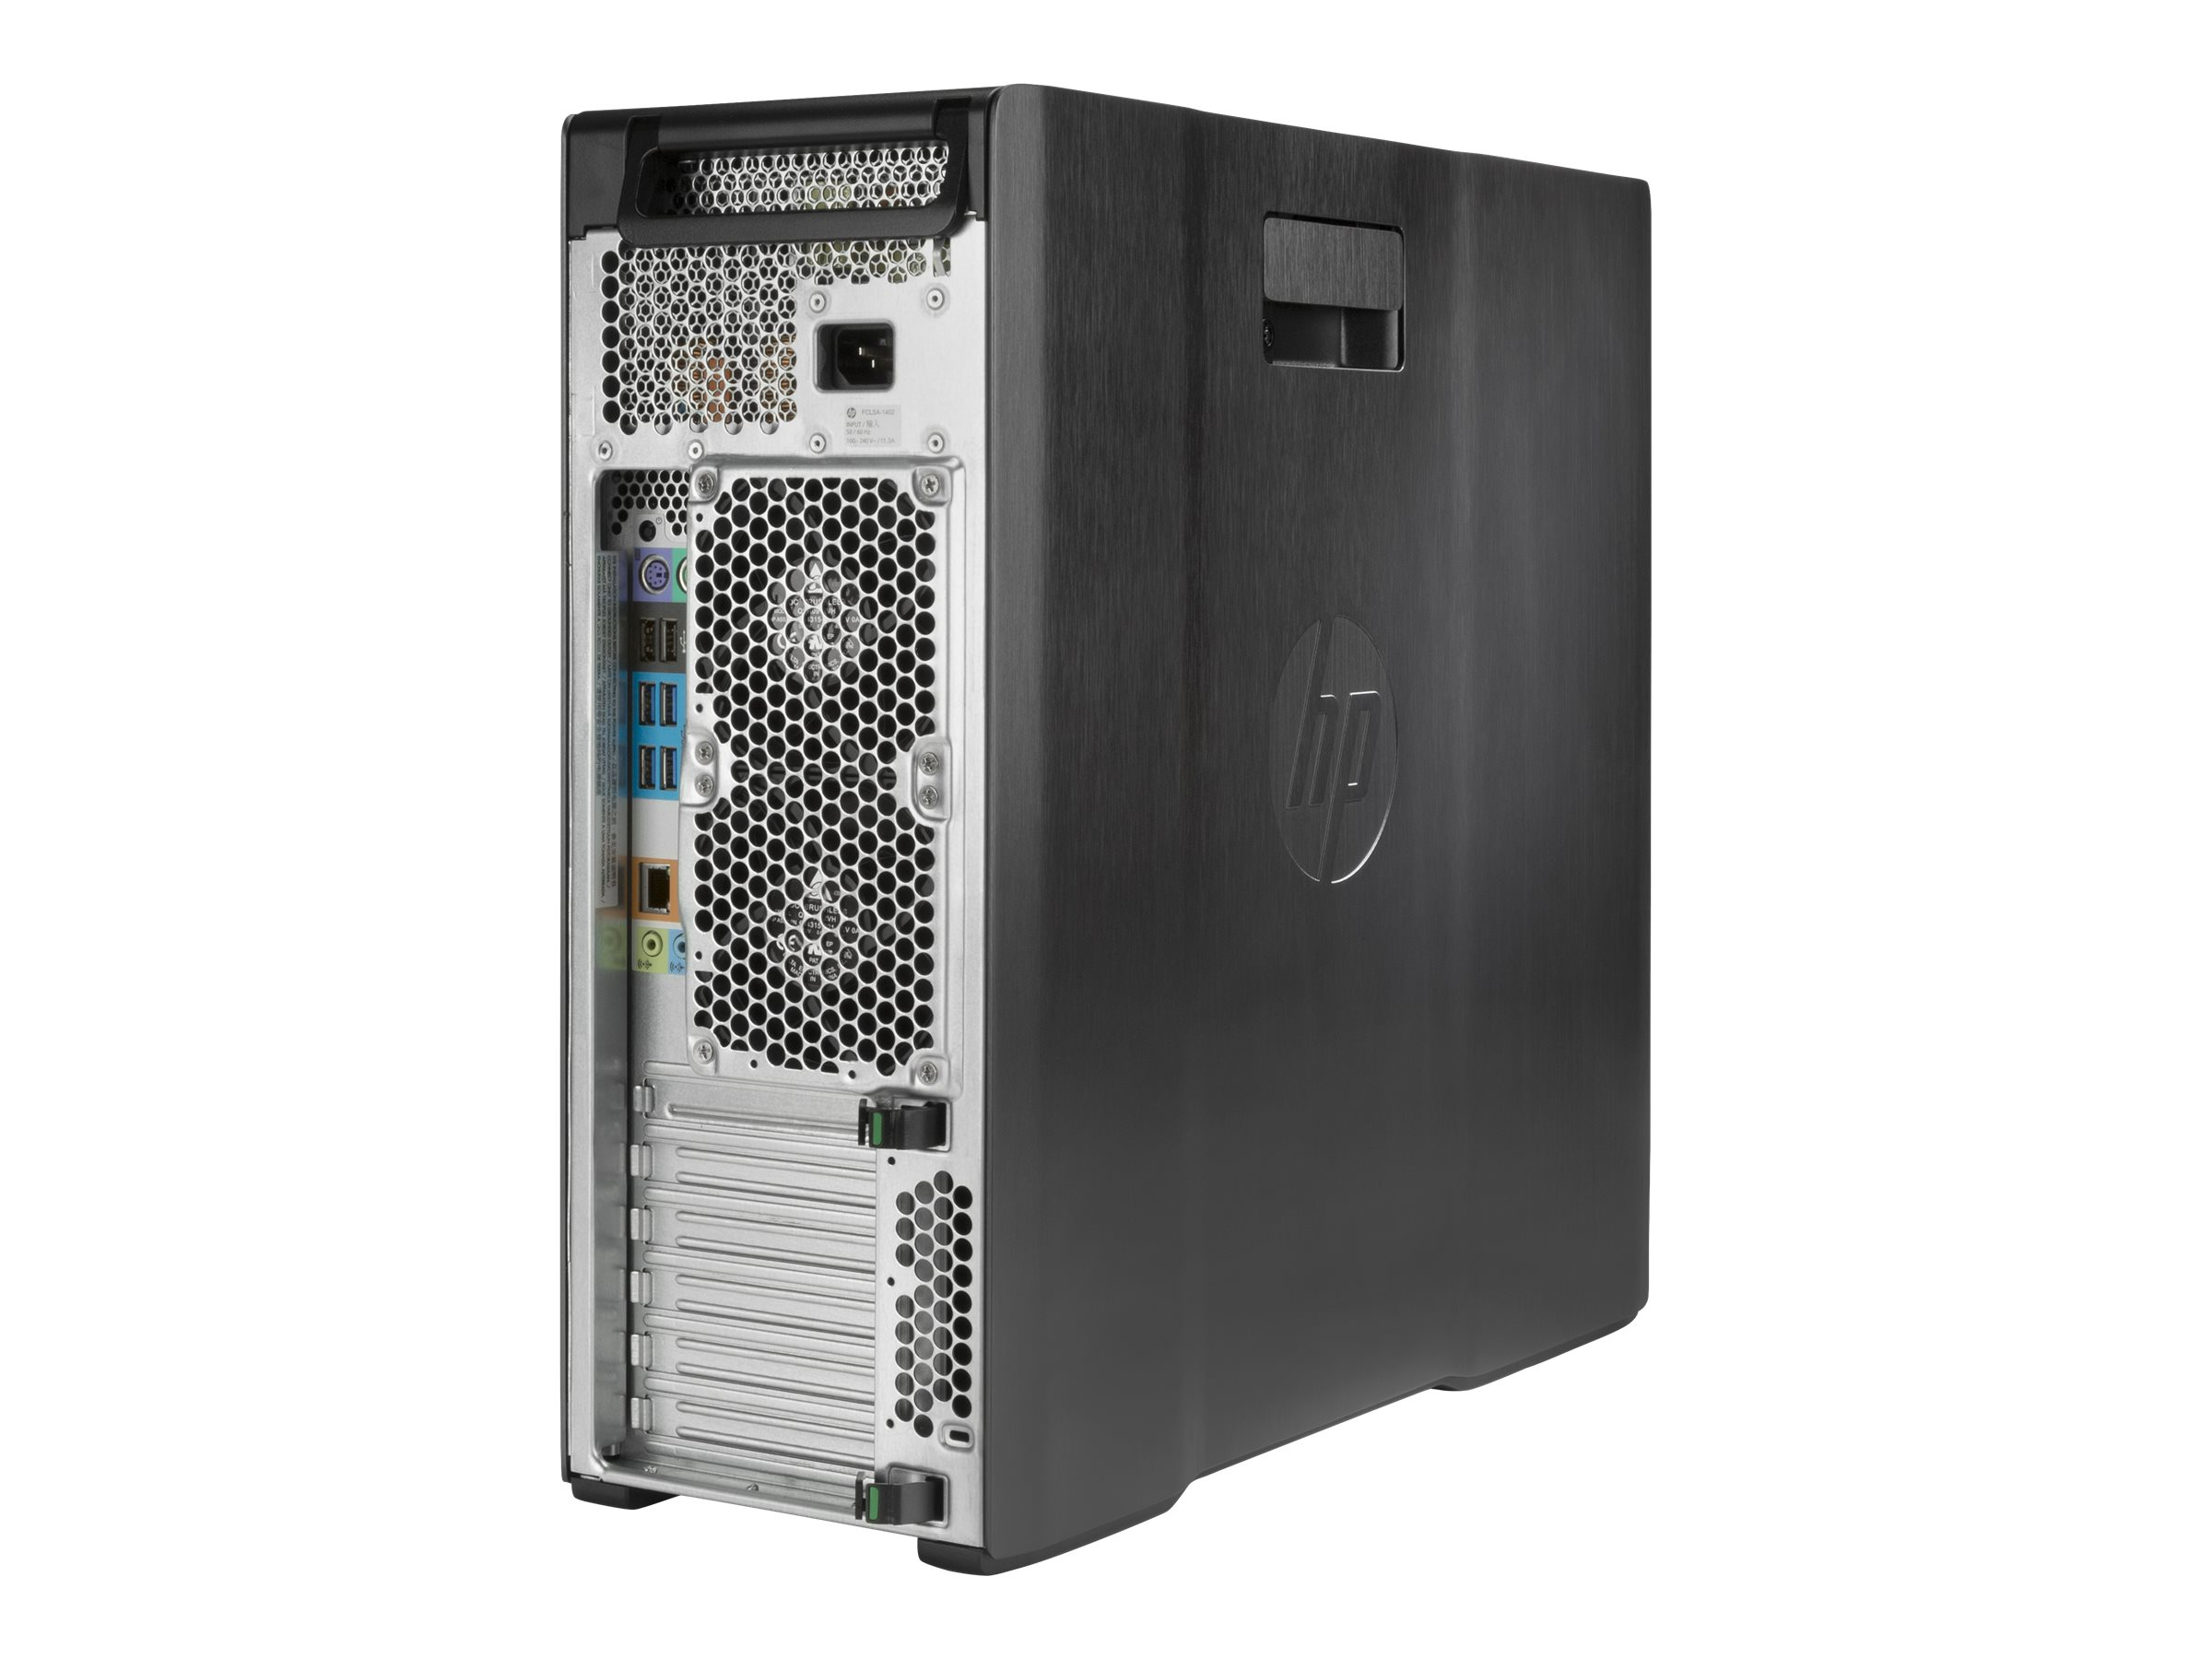 hp workstation z640 mt 4u 1 x xeon e5 2630v4 2 2 ghz ram. Black Bedroom Furniture Sets. Home Design Ideas